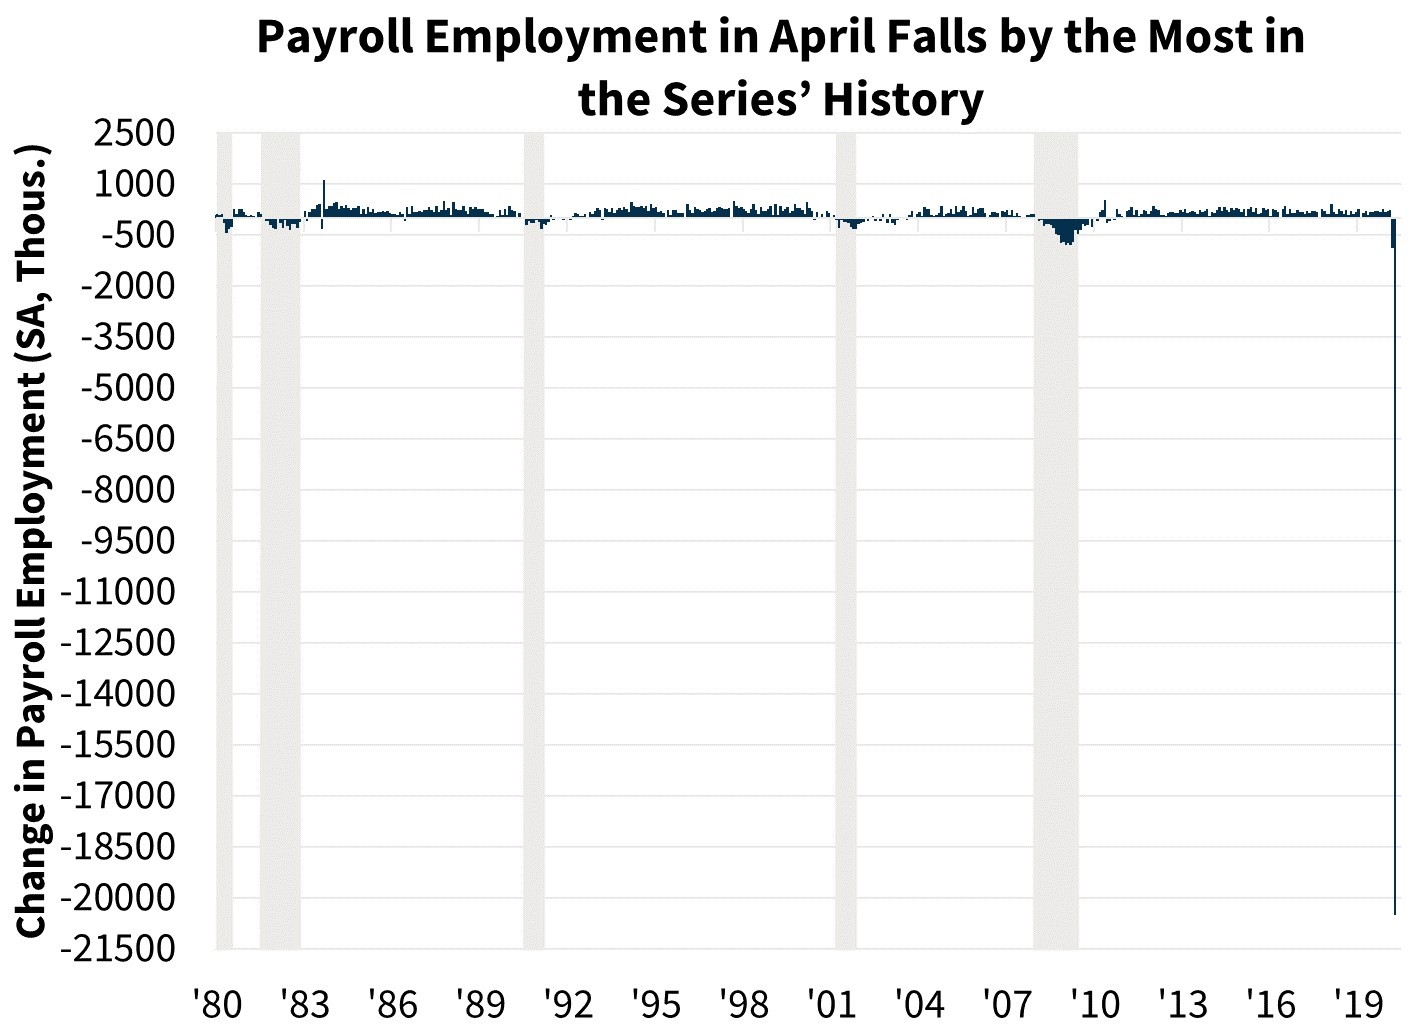 Payroll Employment in April Falls by the Most in the Series' History